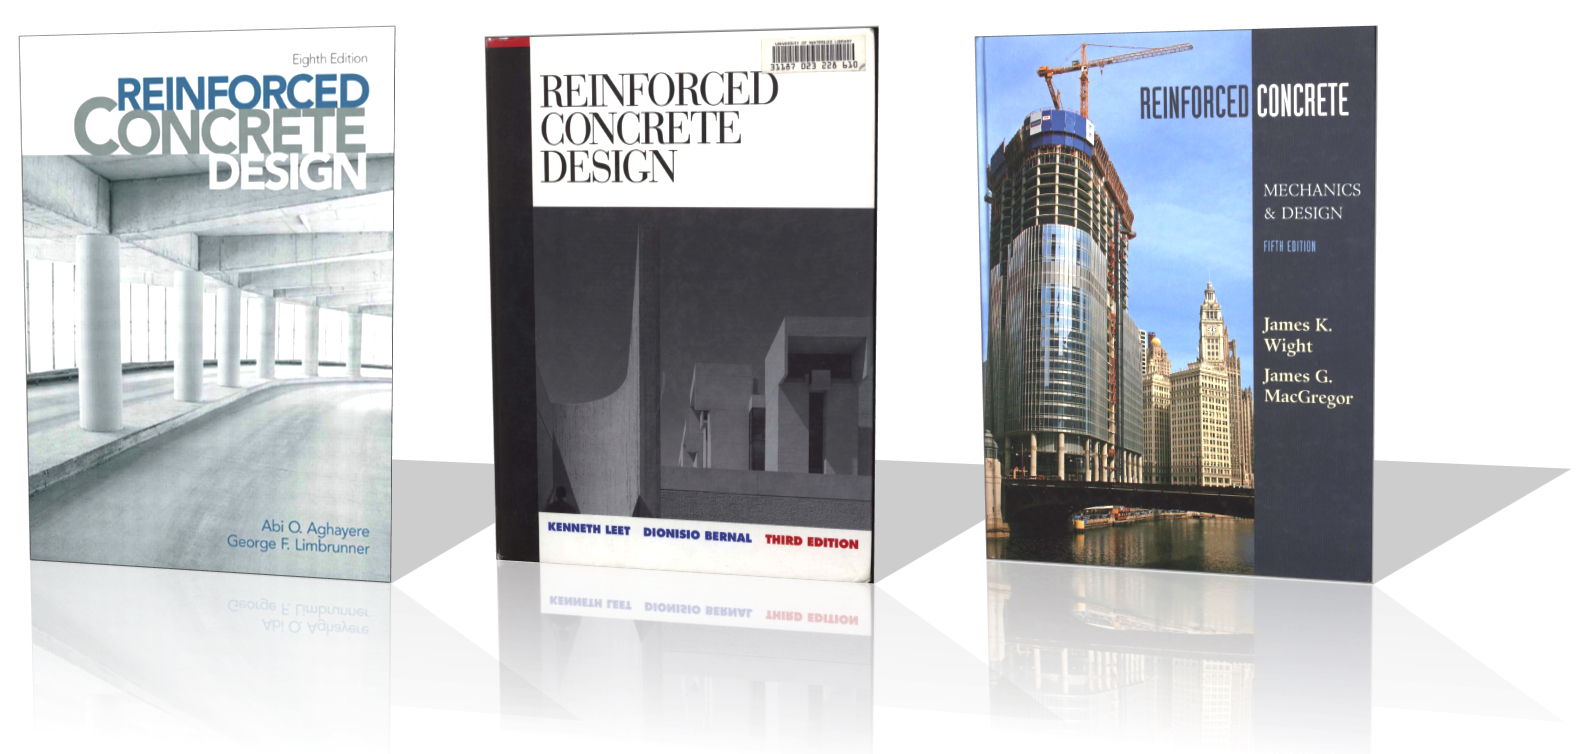 reinforced concrete design 8th edition abi o aghayere solution manual